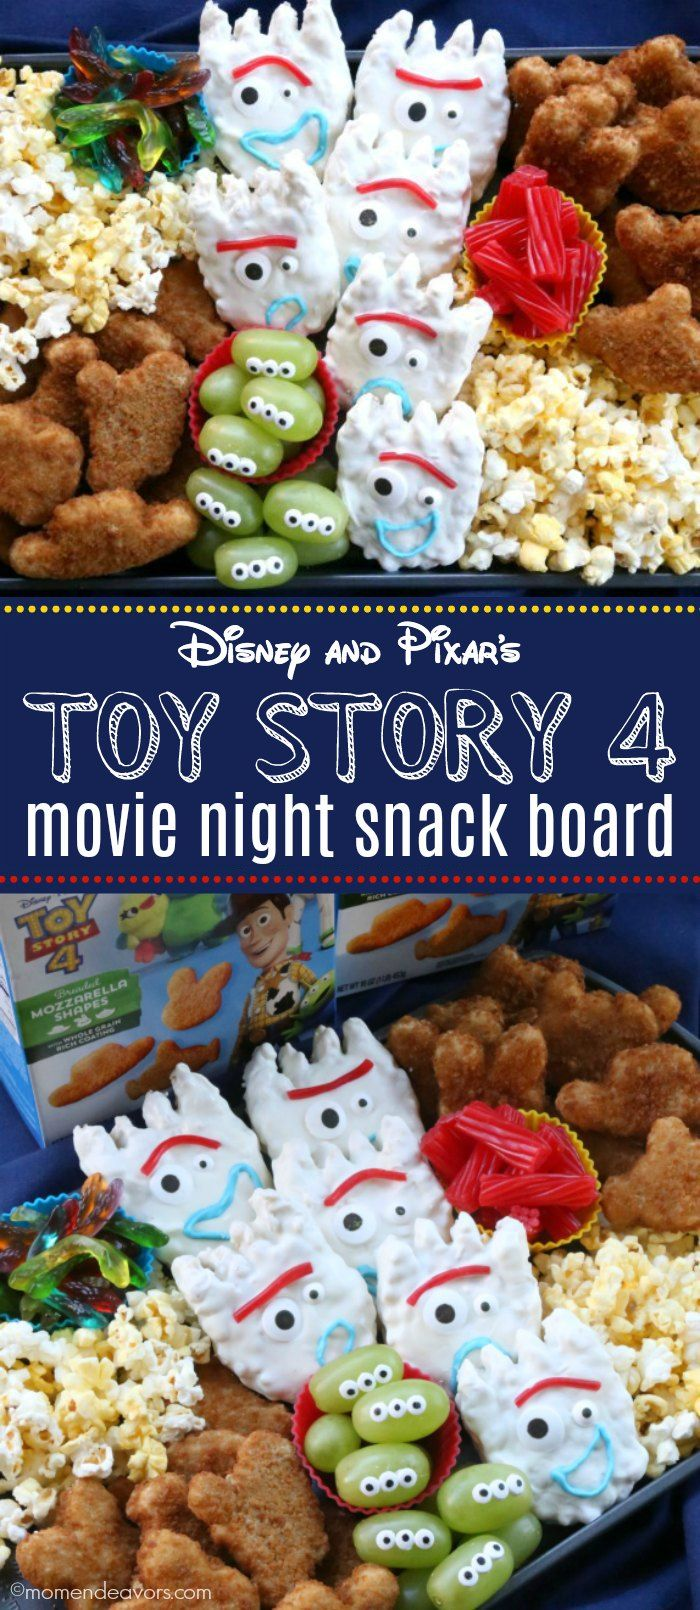 Disney and Pixar's Toy Story 4 Movie Night Snack Board #movienightsnacks